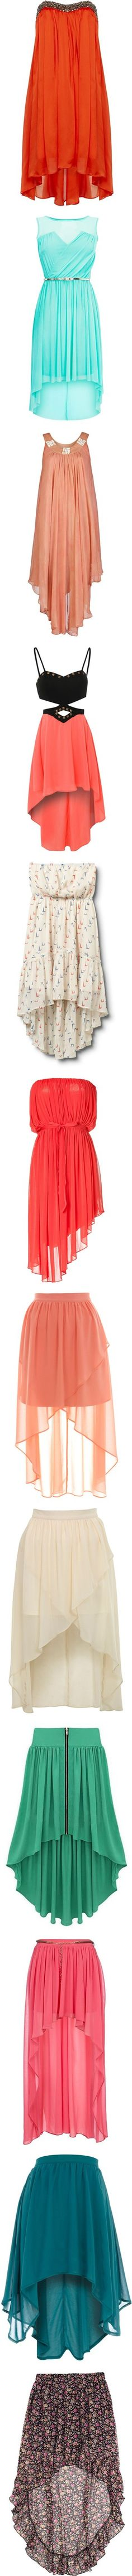 """High Low Dresses & Skirts"" by supergracieloo ❤ liked on Polyvore"